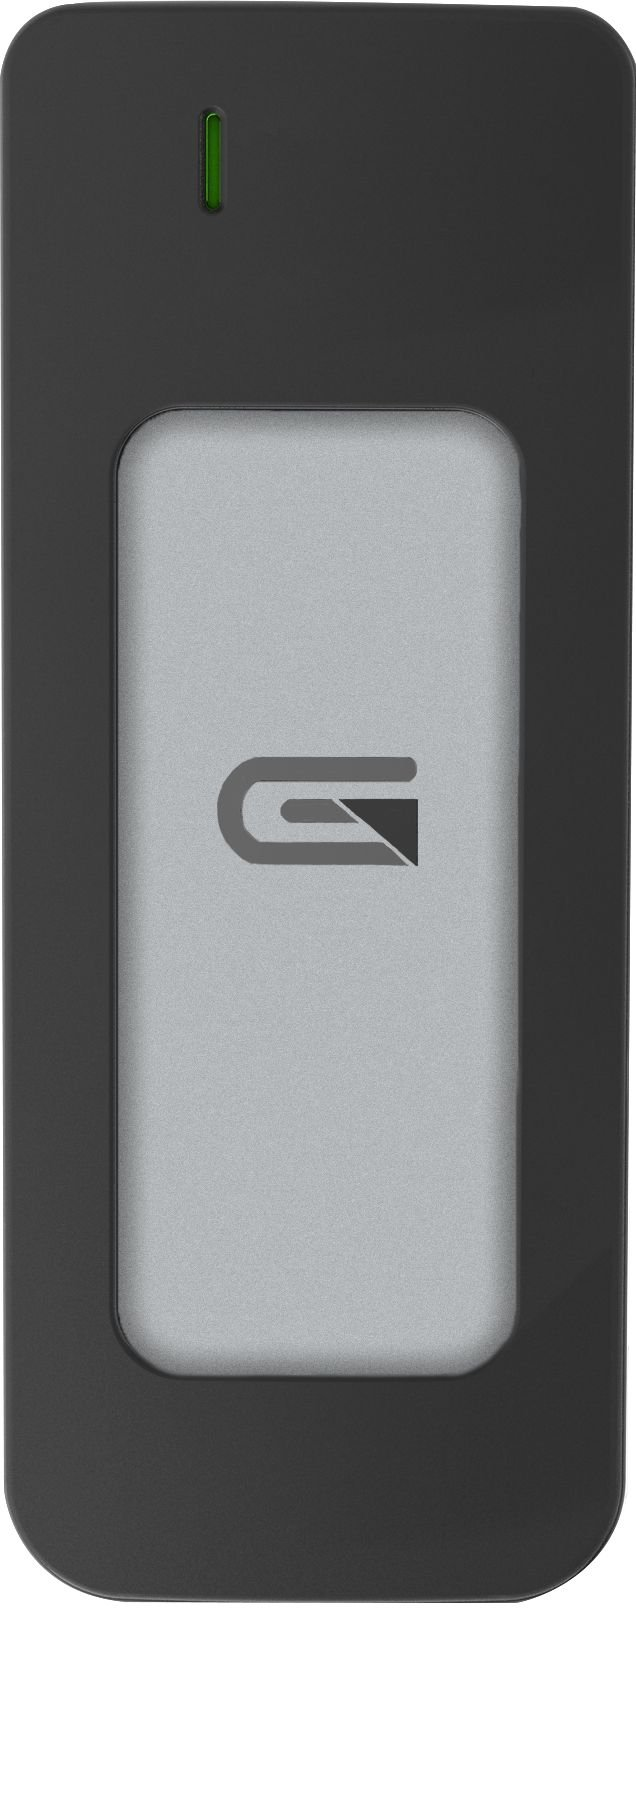 Glyph 1 TB Atom USB 3.1 Type-C External Solid State Drive - Silver by Glyph Production Technologies (Image #1)